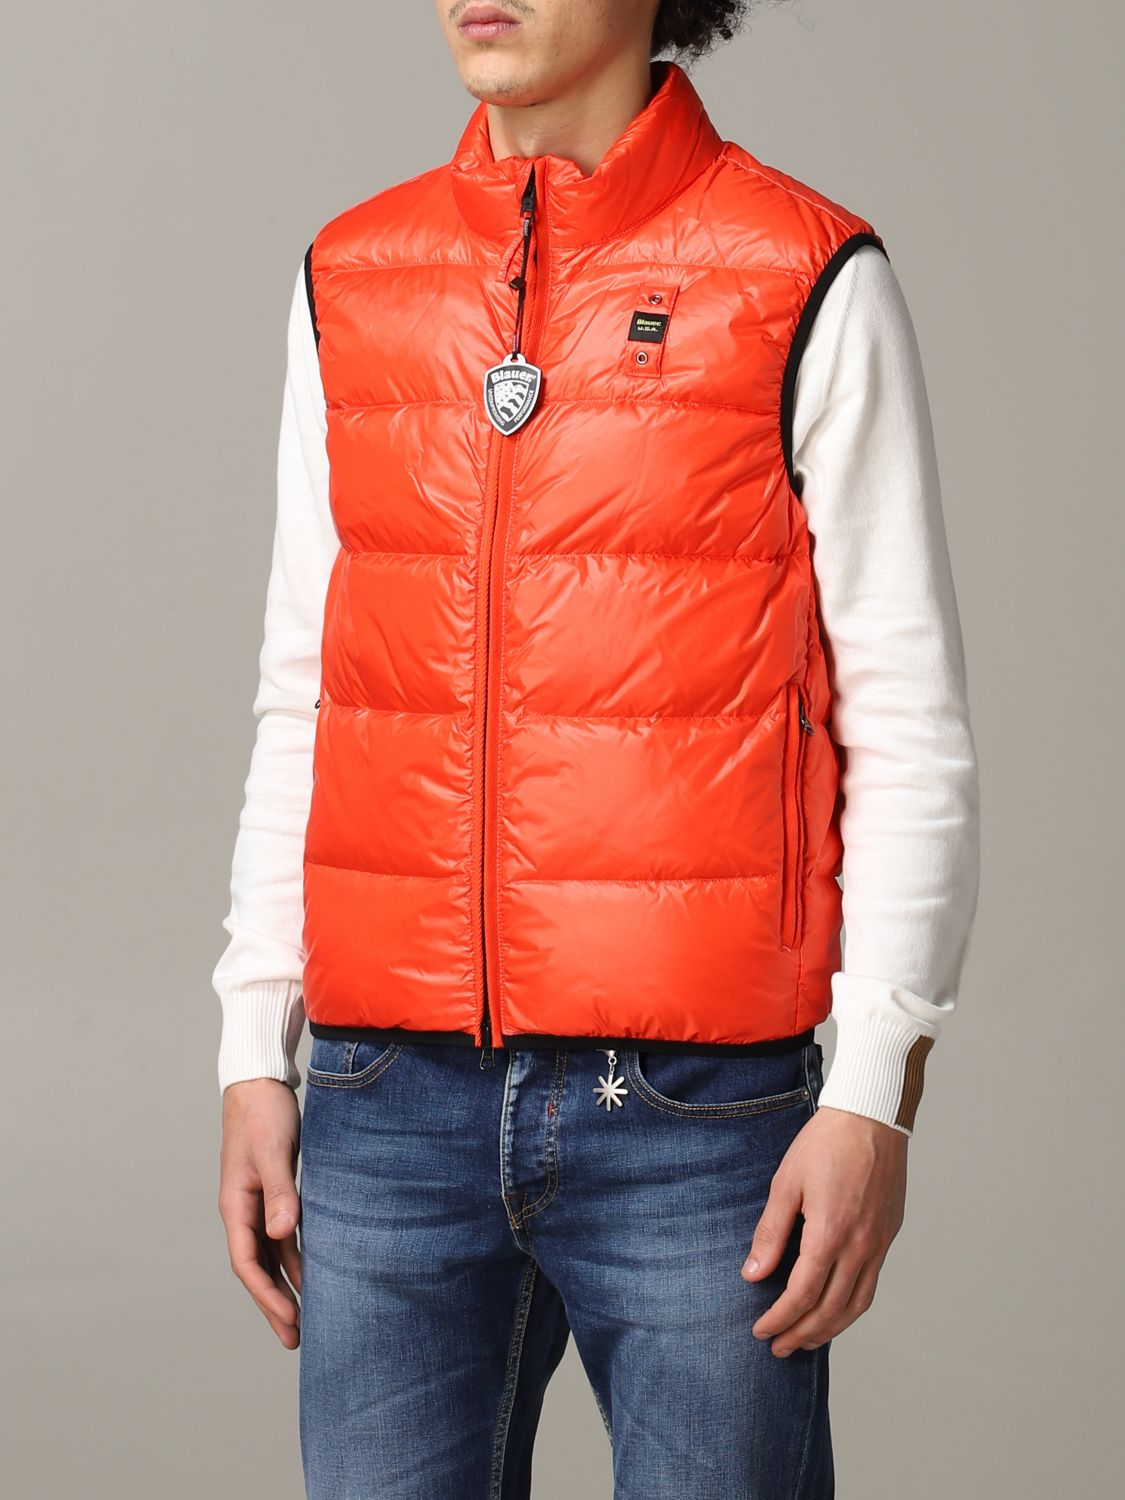 Suit vest Blauer: Suit vest men Blauer orange 4